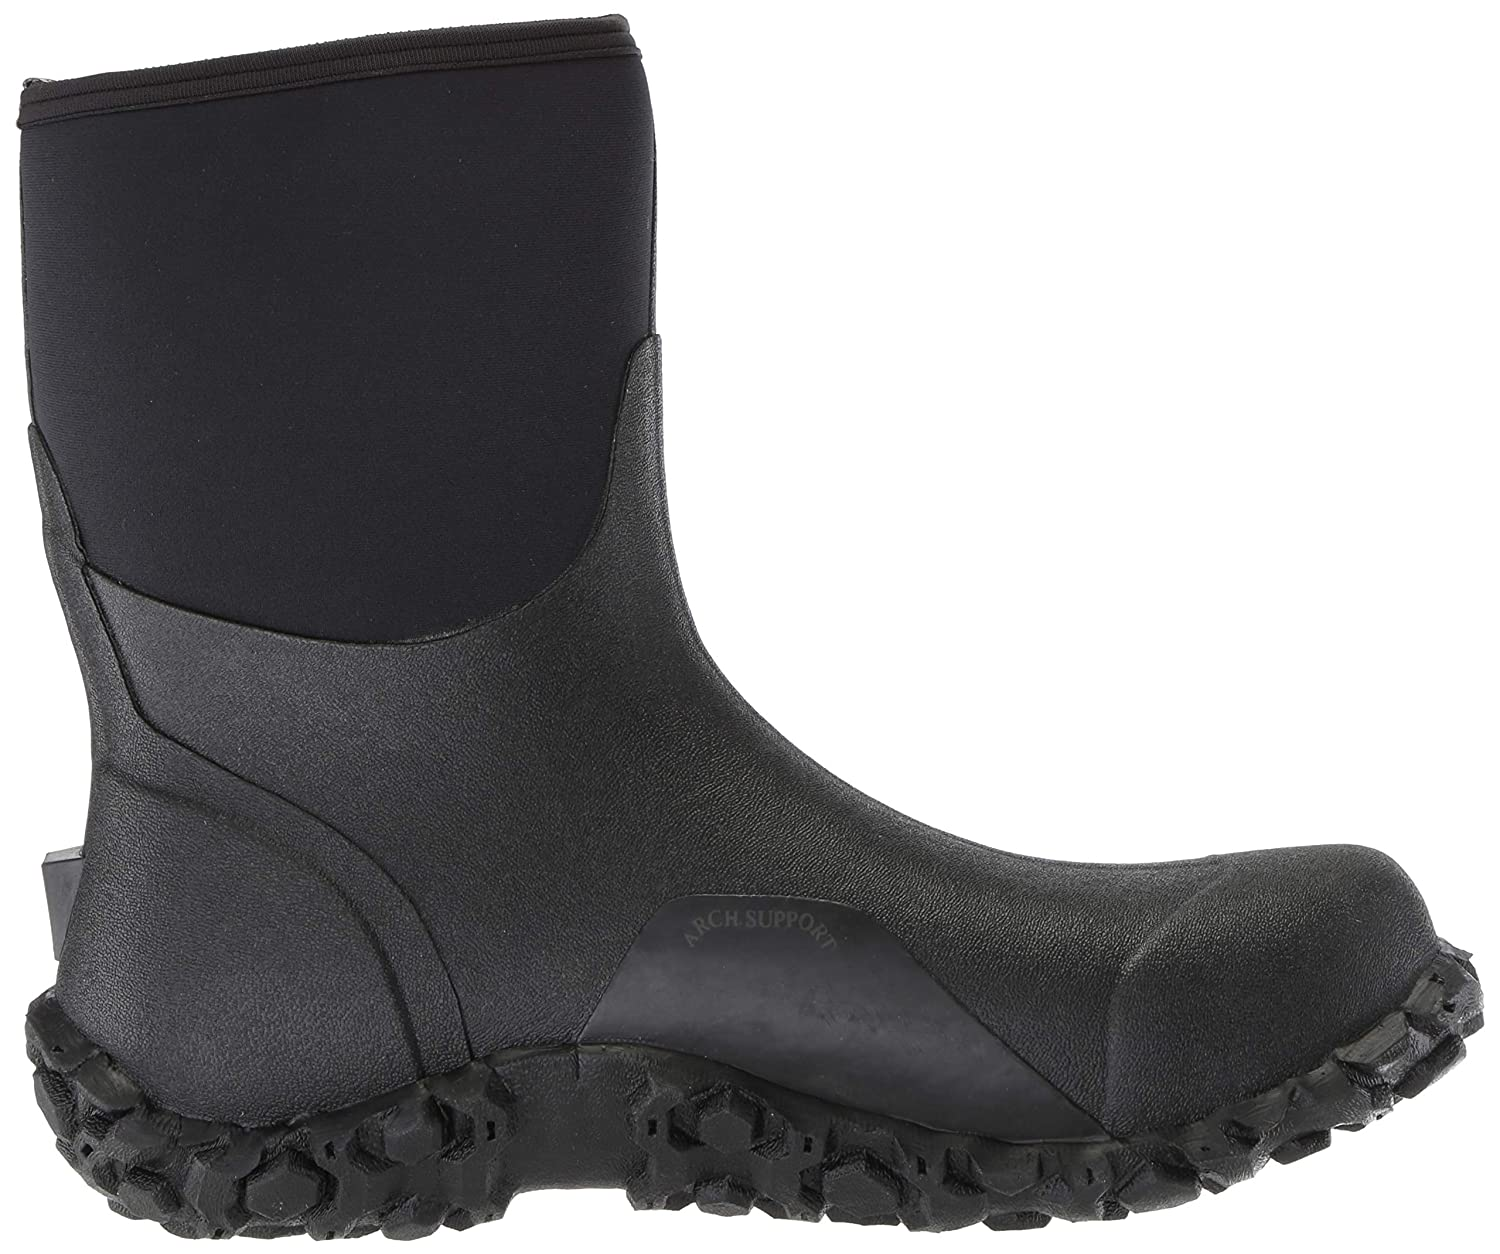 ec5c9fee11 Bogs Mens Classic Mid Waterproof Insulated Rain and Winter Snow Boot